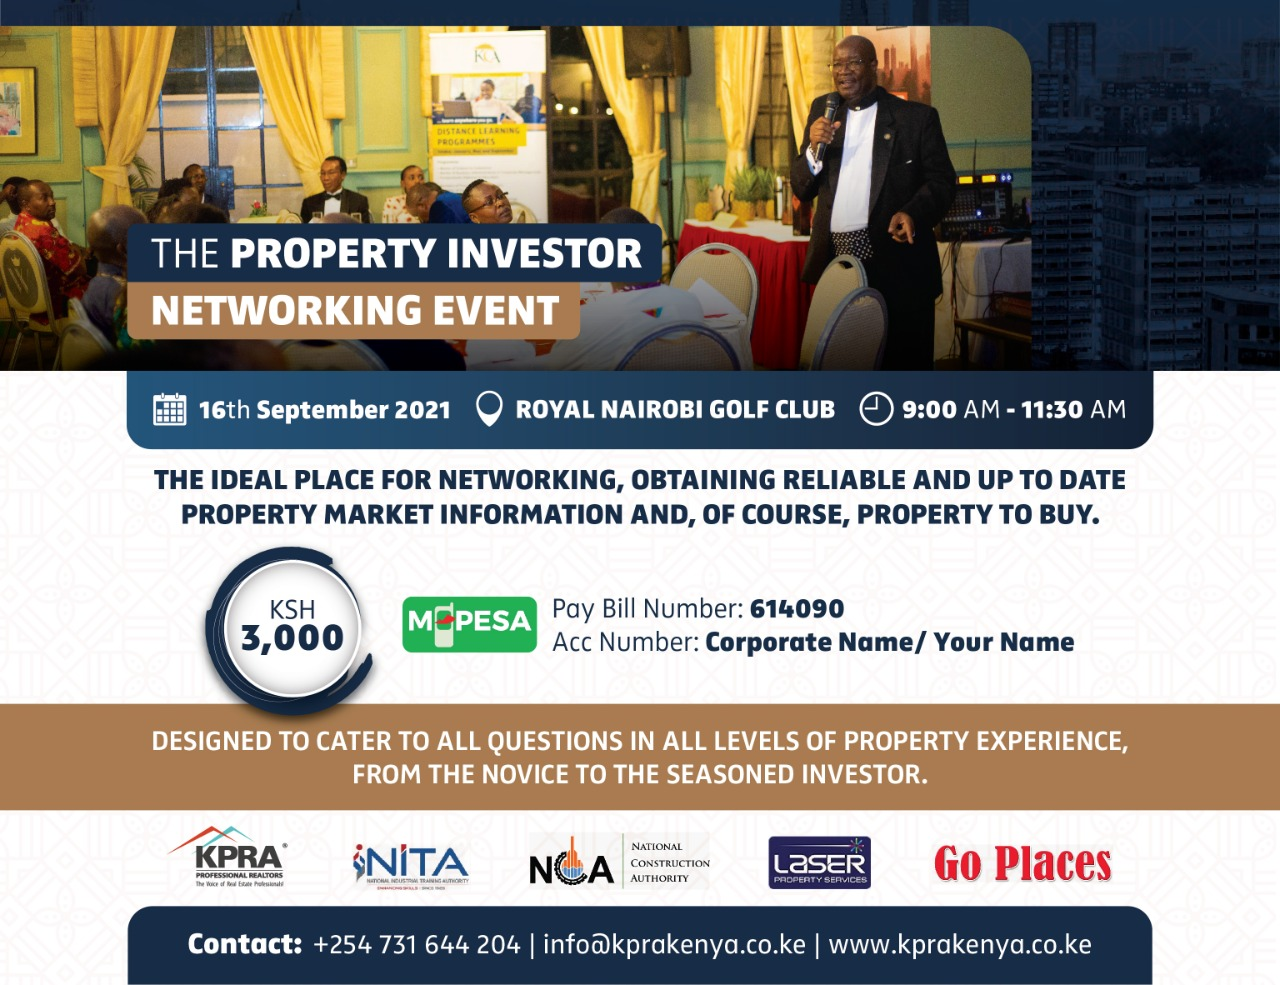 The Property Investor Networking Event